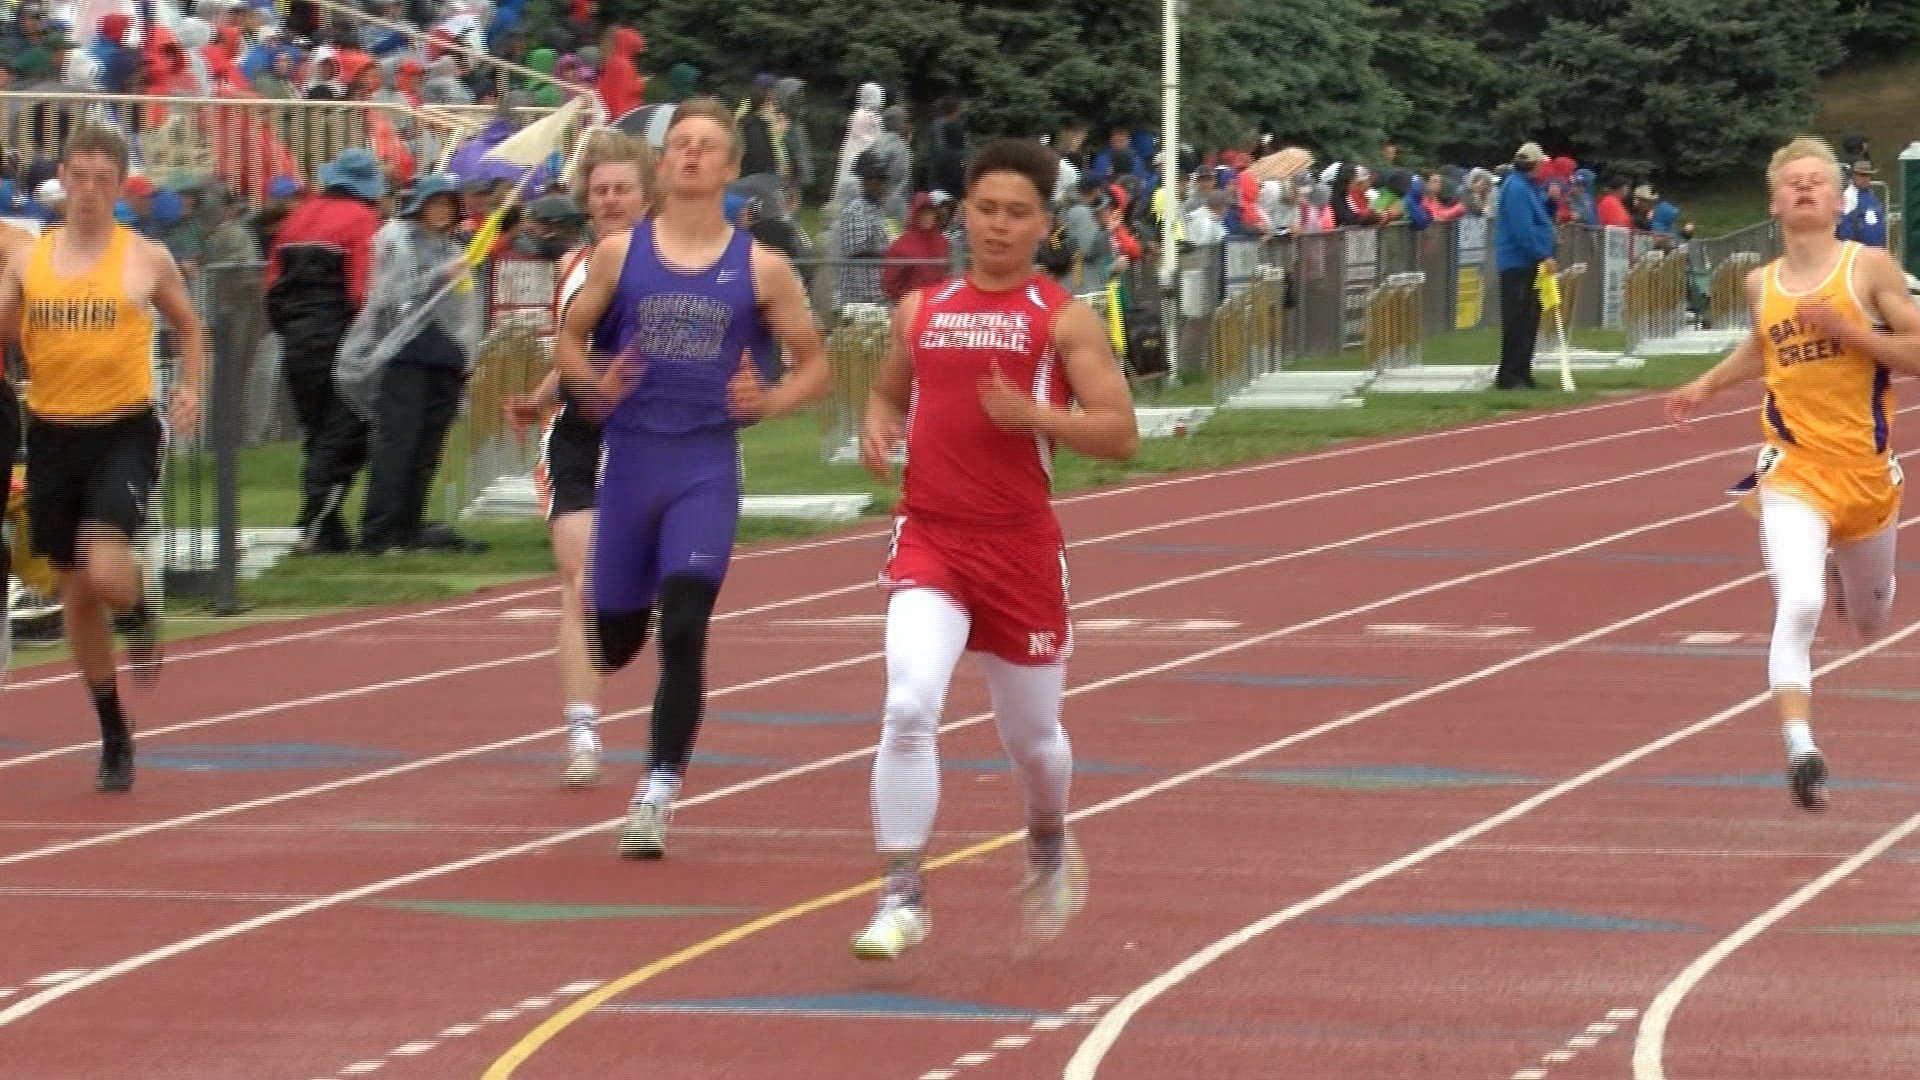 Norfolk Catholic's Dylan Kautz won the Class C 100 and 200 meter dashes on Saturday.